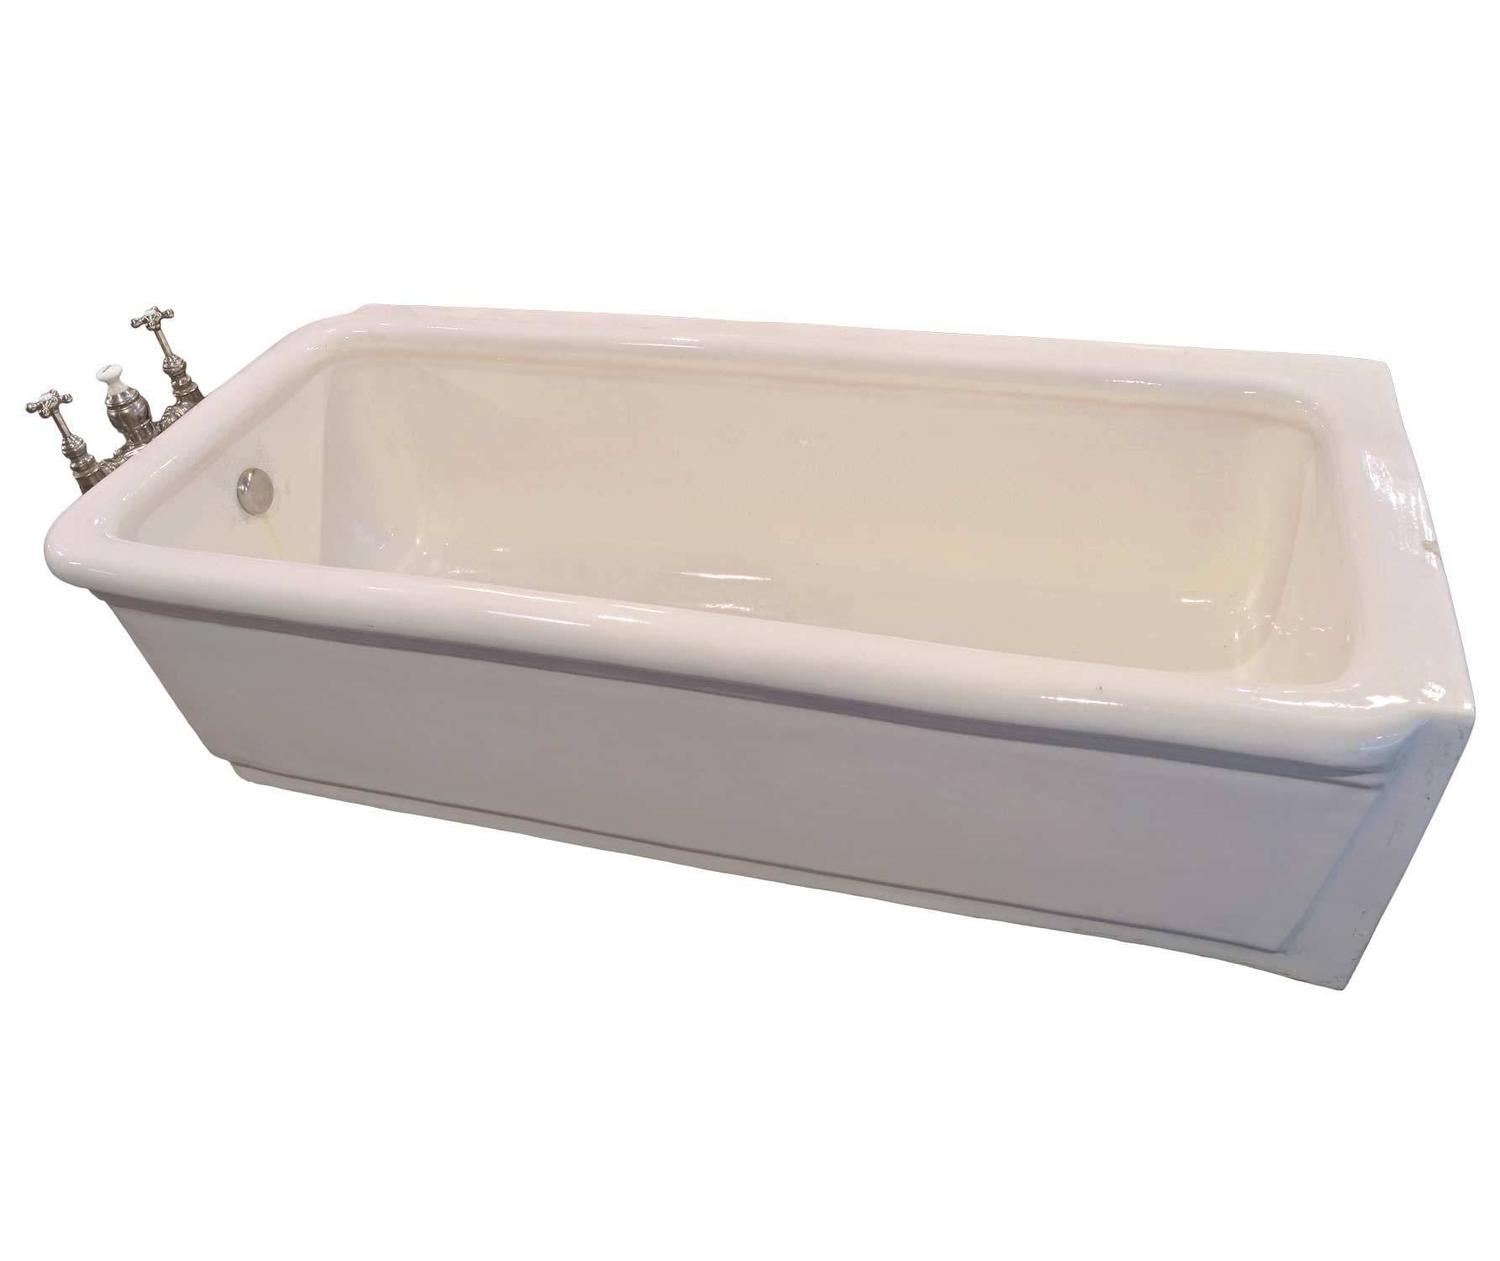 Porcelain bathtubs for sale 28 images porcelain tubs for Porcelain bathtubs for sale